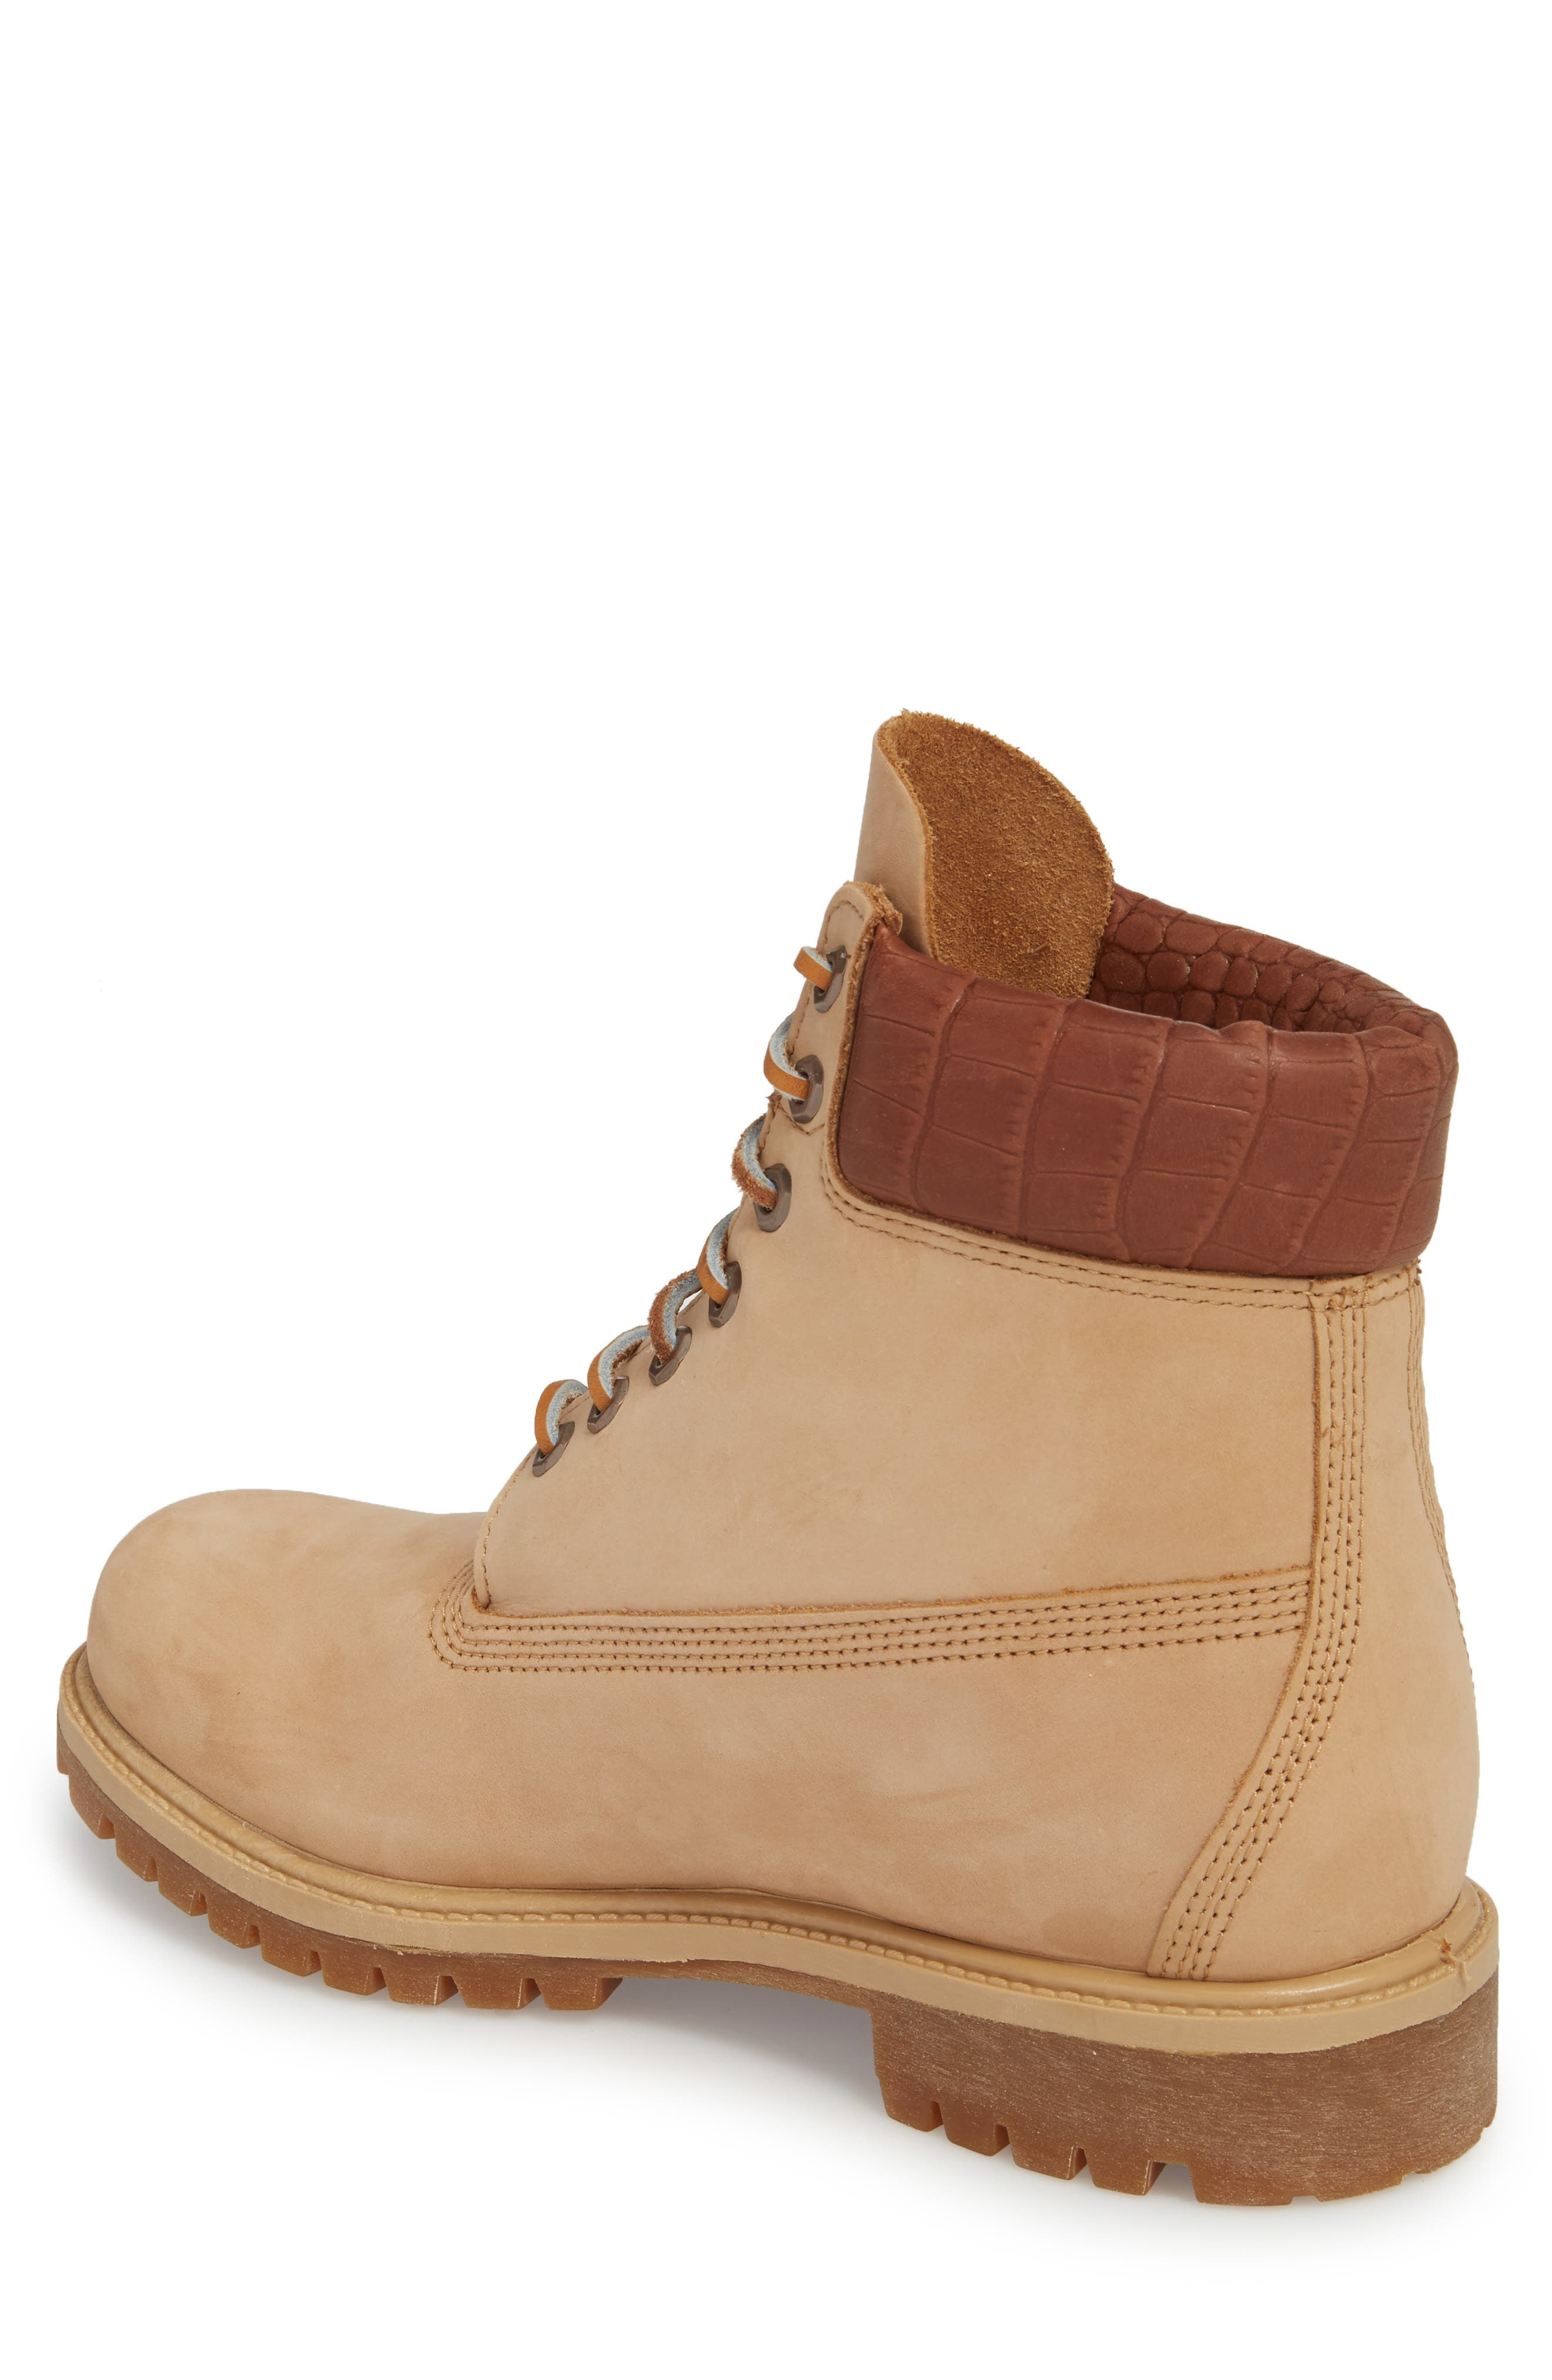 Premium Waterproof PrimaLoft<sup>®</sup> Insulated Boot,                             Alternate thumbnail 2, color,                             Iced Coffee